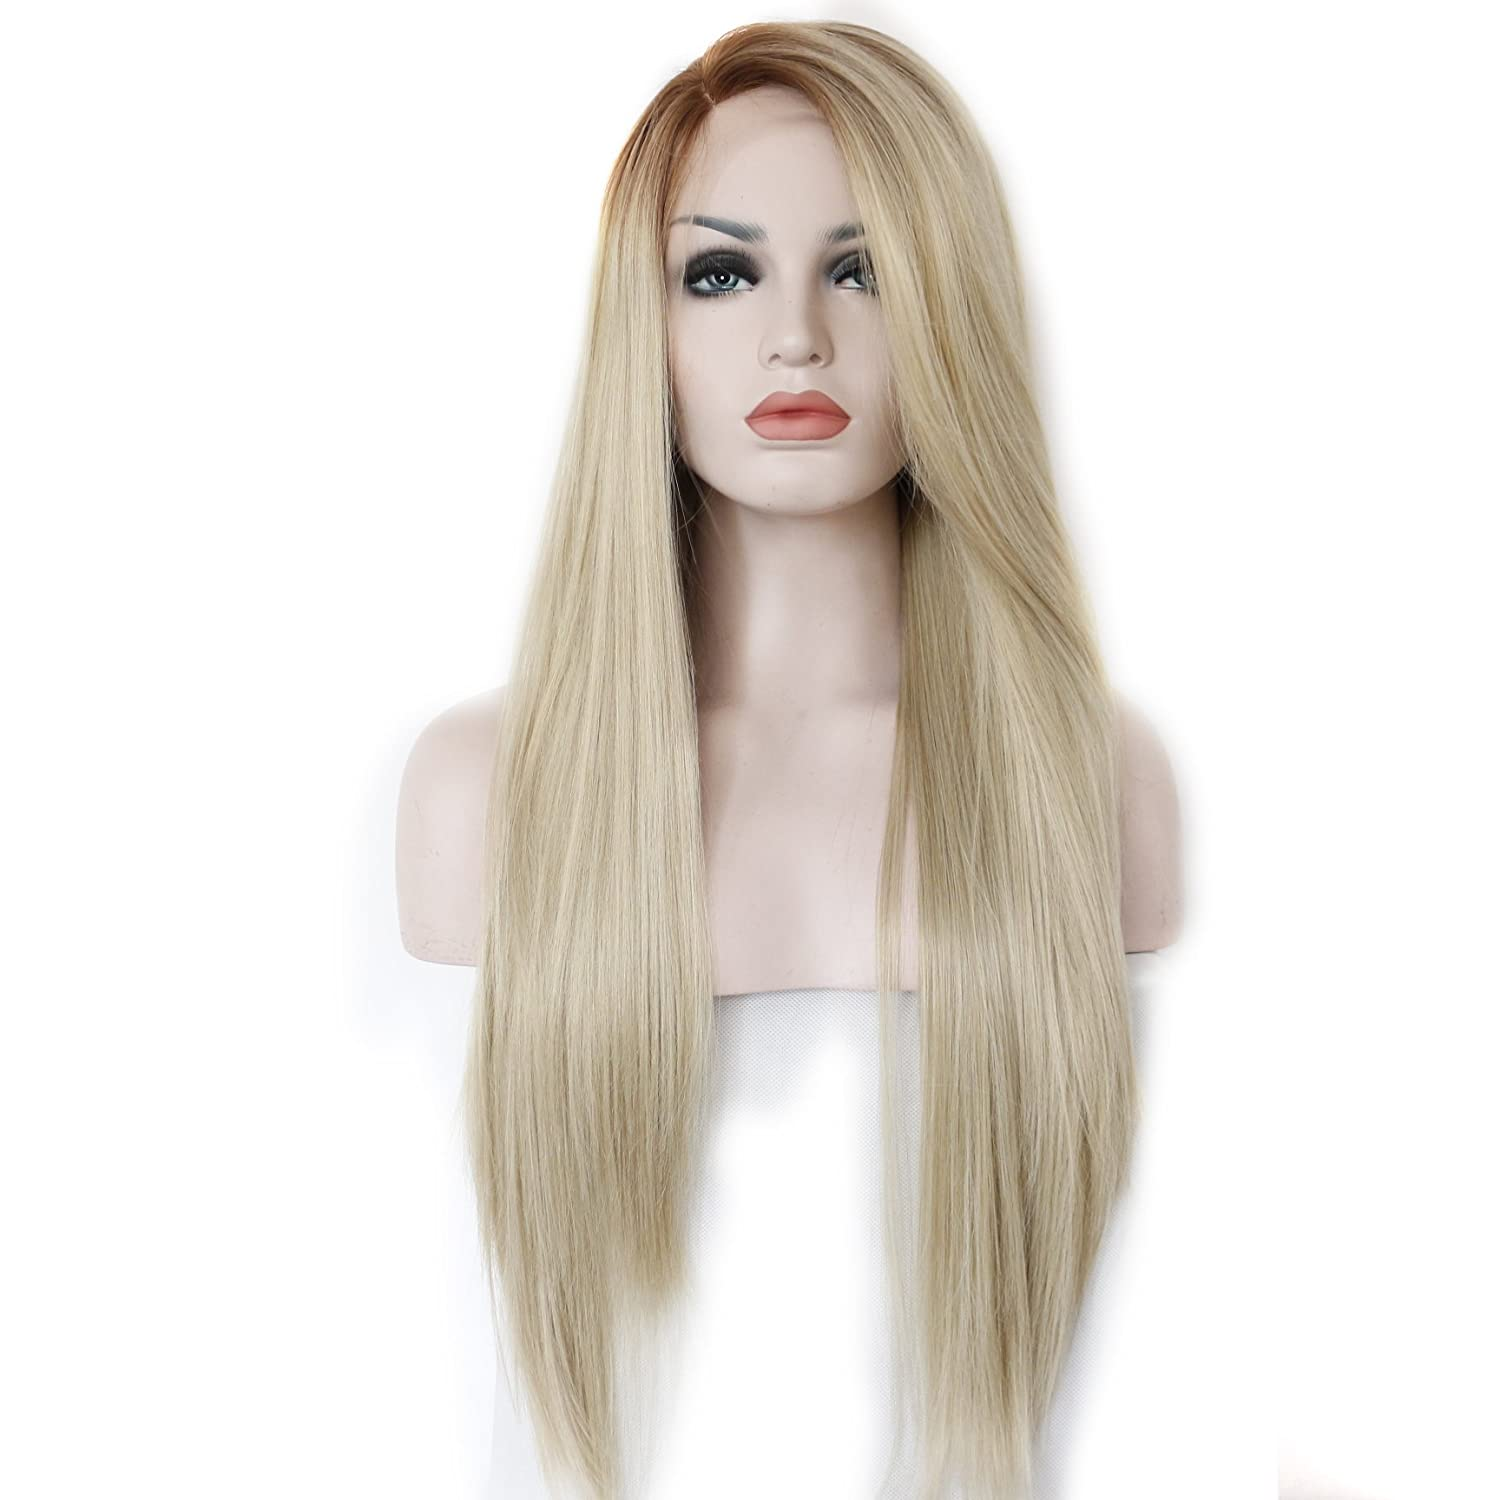 K ryssma® Women s Blonde Ombre Side Part Synthetic Lace Front Wigs Straight  Hair Brown e820c5bdf3